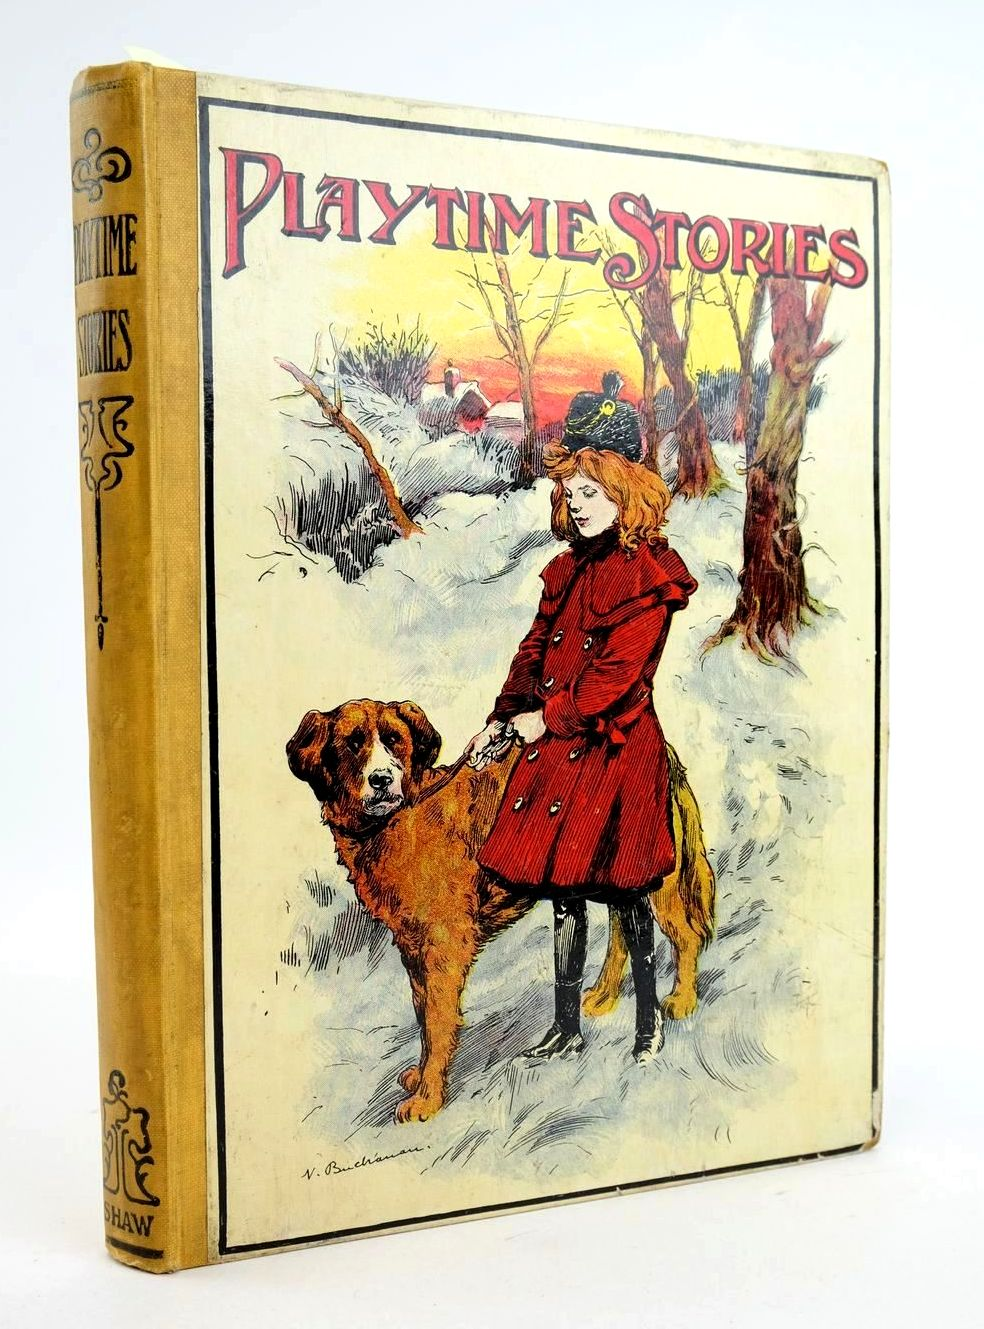 Photo of PLAYTIME STORIES illustrated by Wain, Louis Neilson, Harry B. Helmer, Levine et al., published by John F. Shaw & Co Ltd. (STOCK CODE: 1319054)  for sale by Stella & Rose's Books